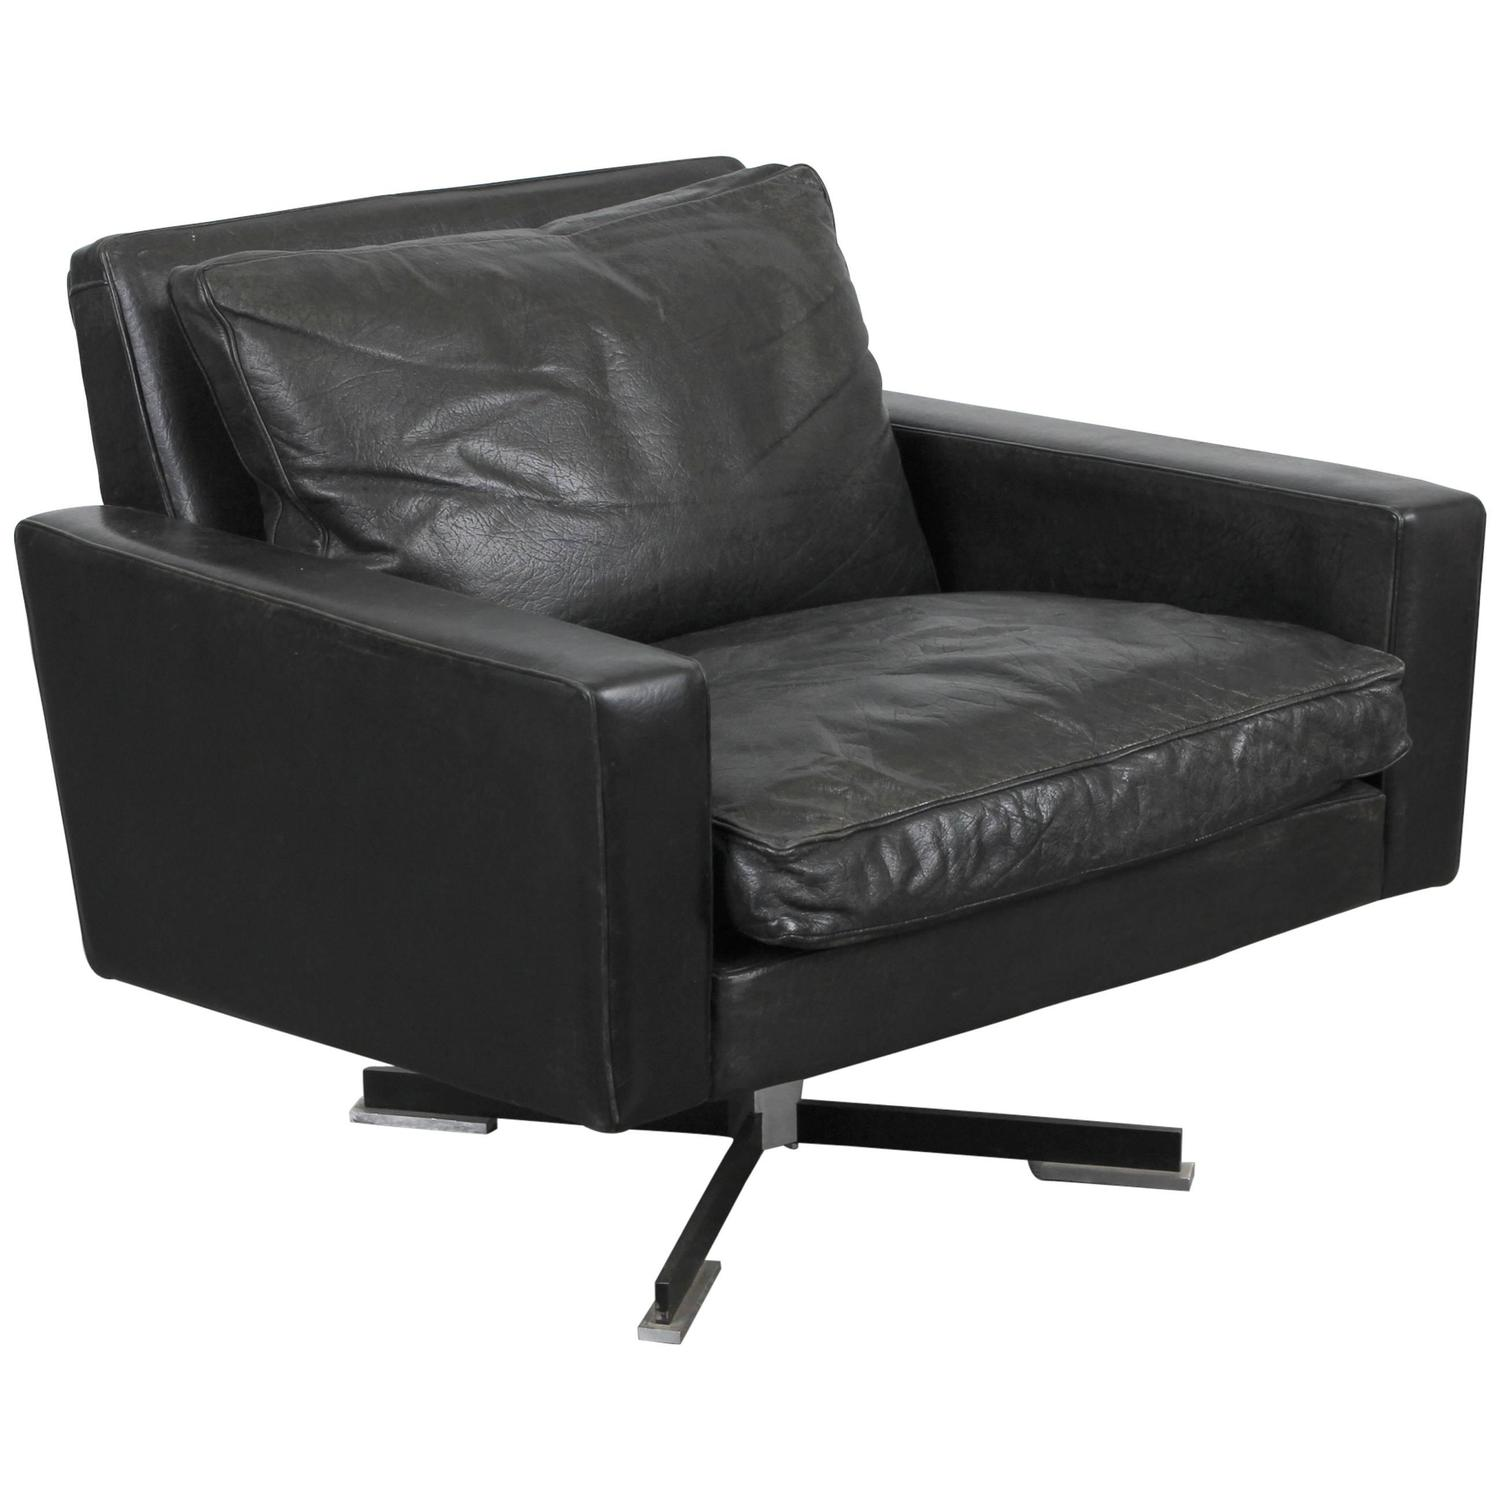 Mid century modern black leather swivel chair for sale at for Mid century modern leather chairs